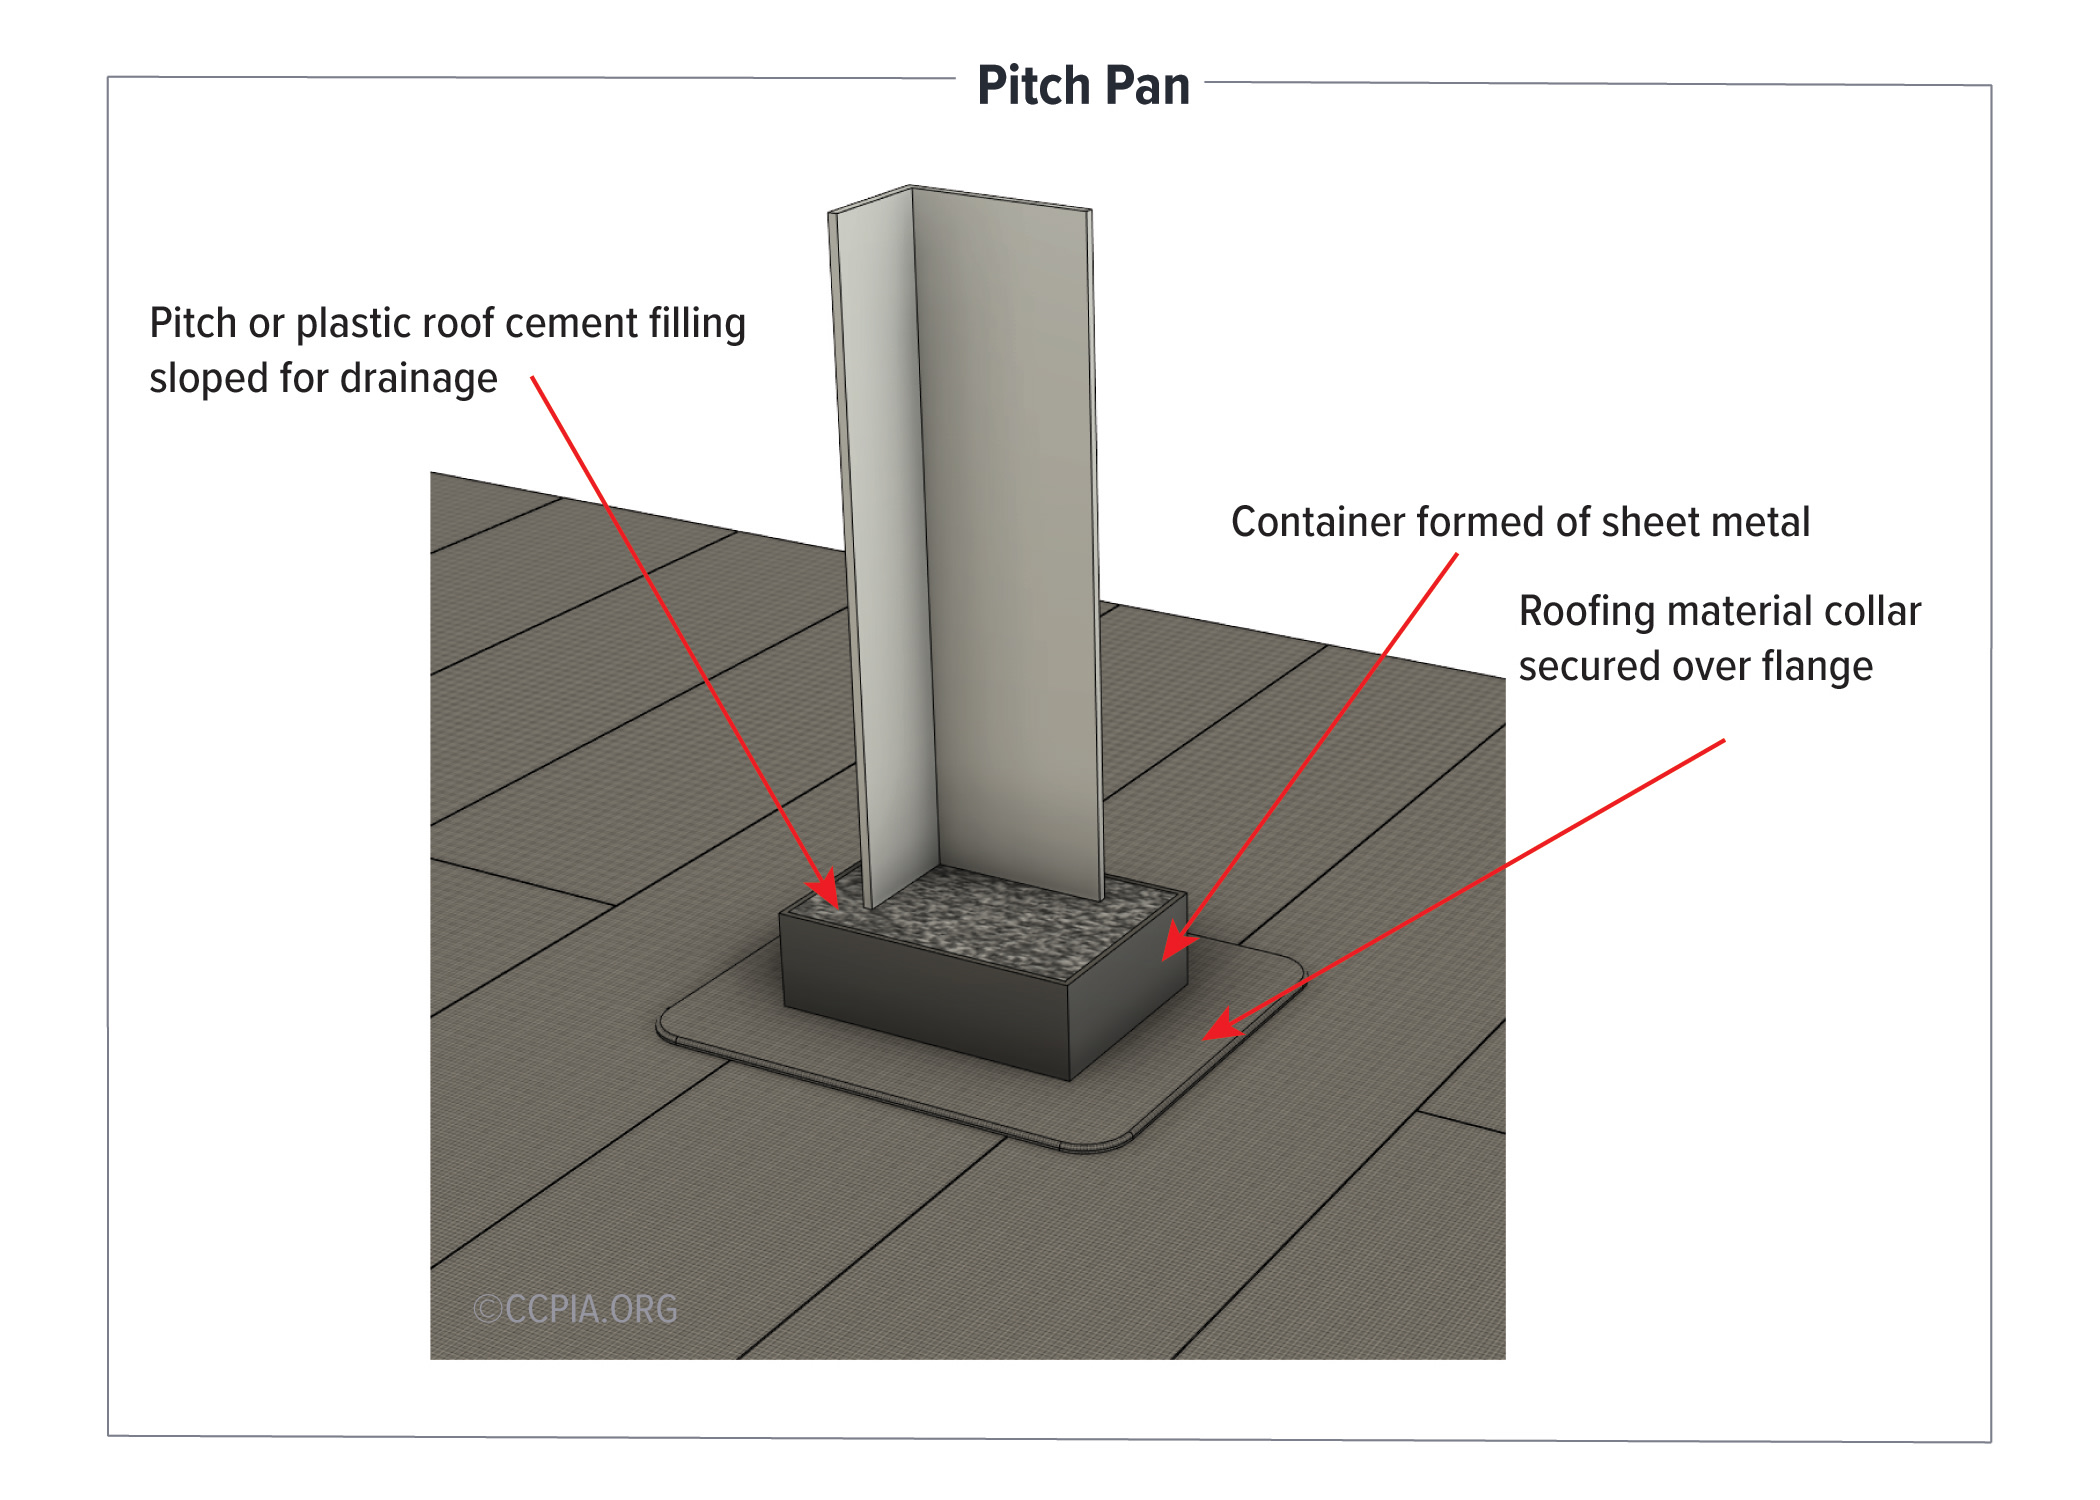 A pitch pan is a container formed of sheet metal that is installed around supporting connections for roof-mounted equipment and machinery. Filling the container with pitch or plastic roof cement helps seal out rainwater.